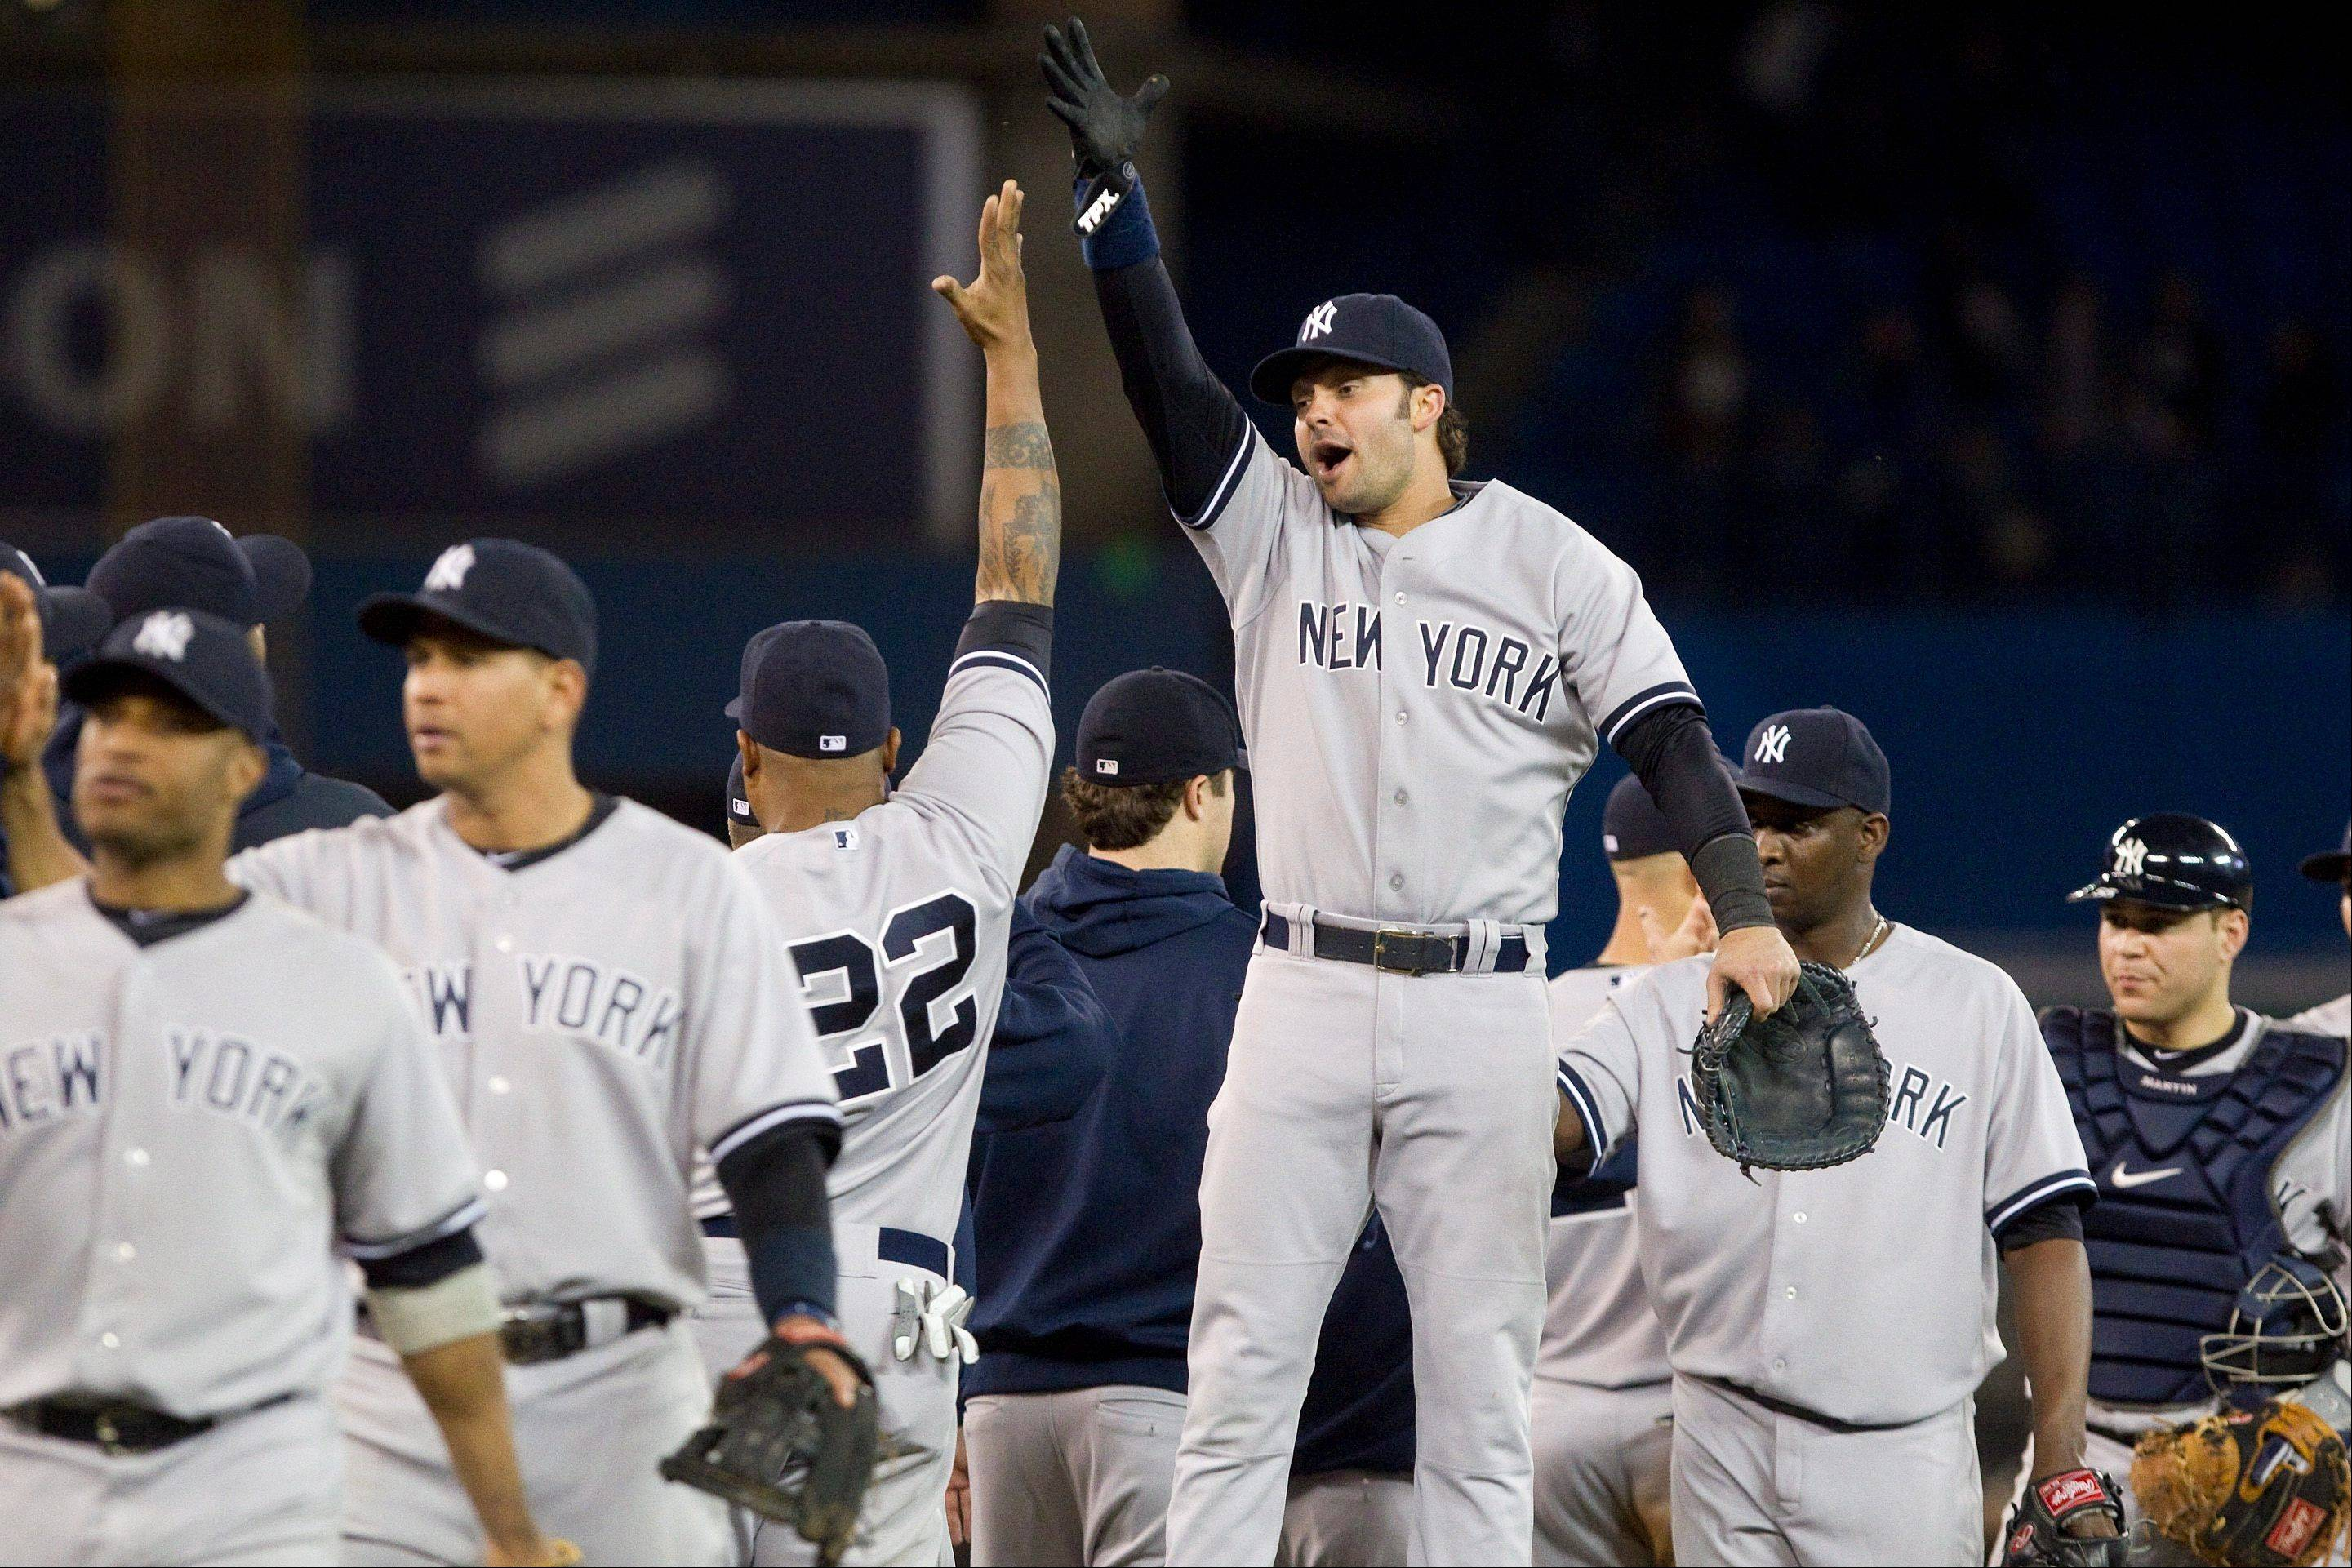 Nick Swisher high-fives Andruw Jones (22) as they celebrate the Yankees' 11-4 win over the Blue Jays Friday in Toronto.